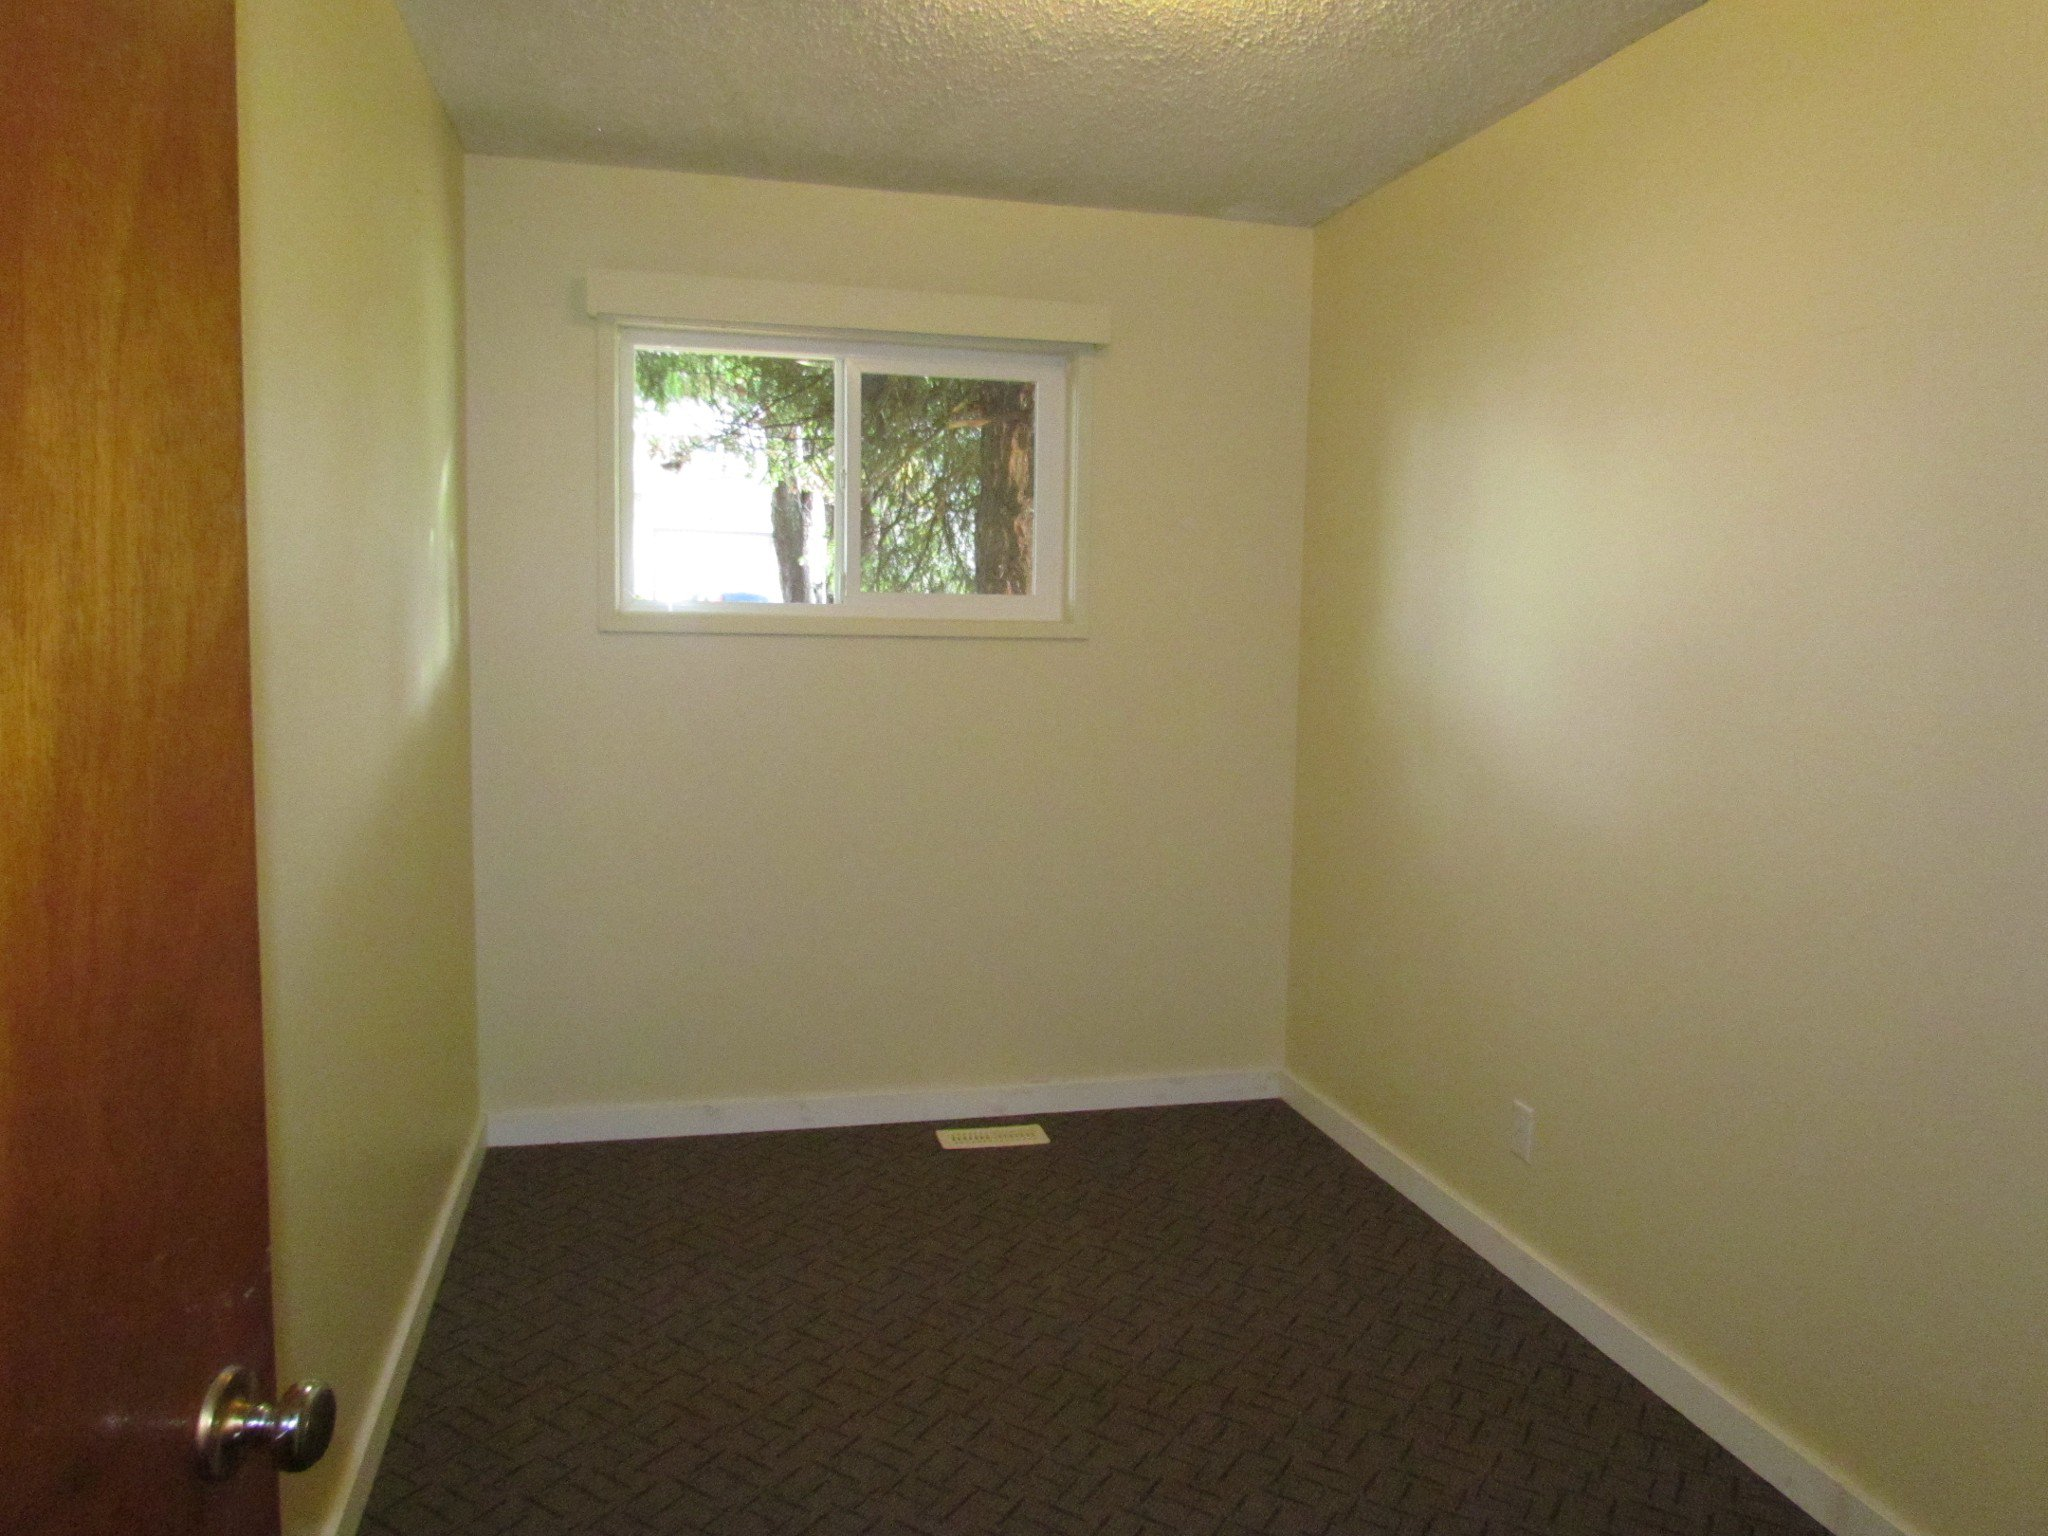 Photo 6: Photos: 1625 Kirklyn St. in Abbotsford: Central Abbotsford House for rent